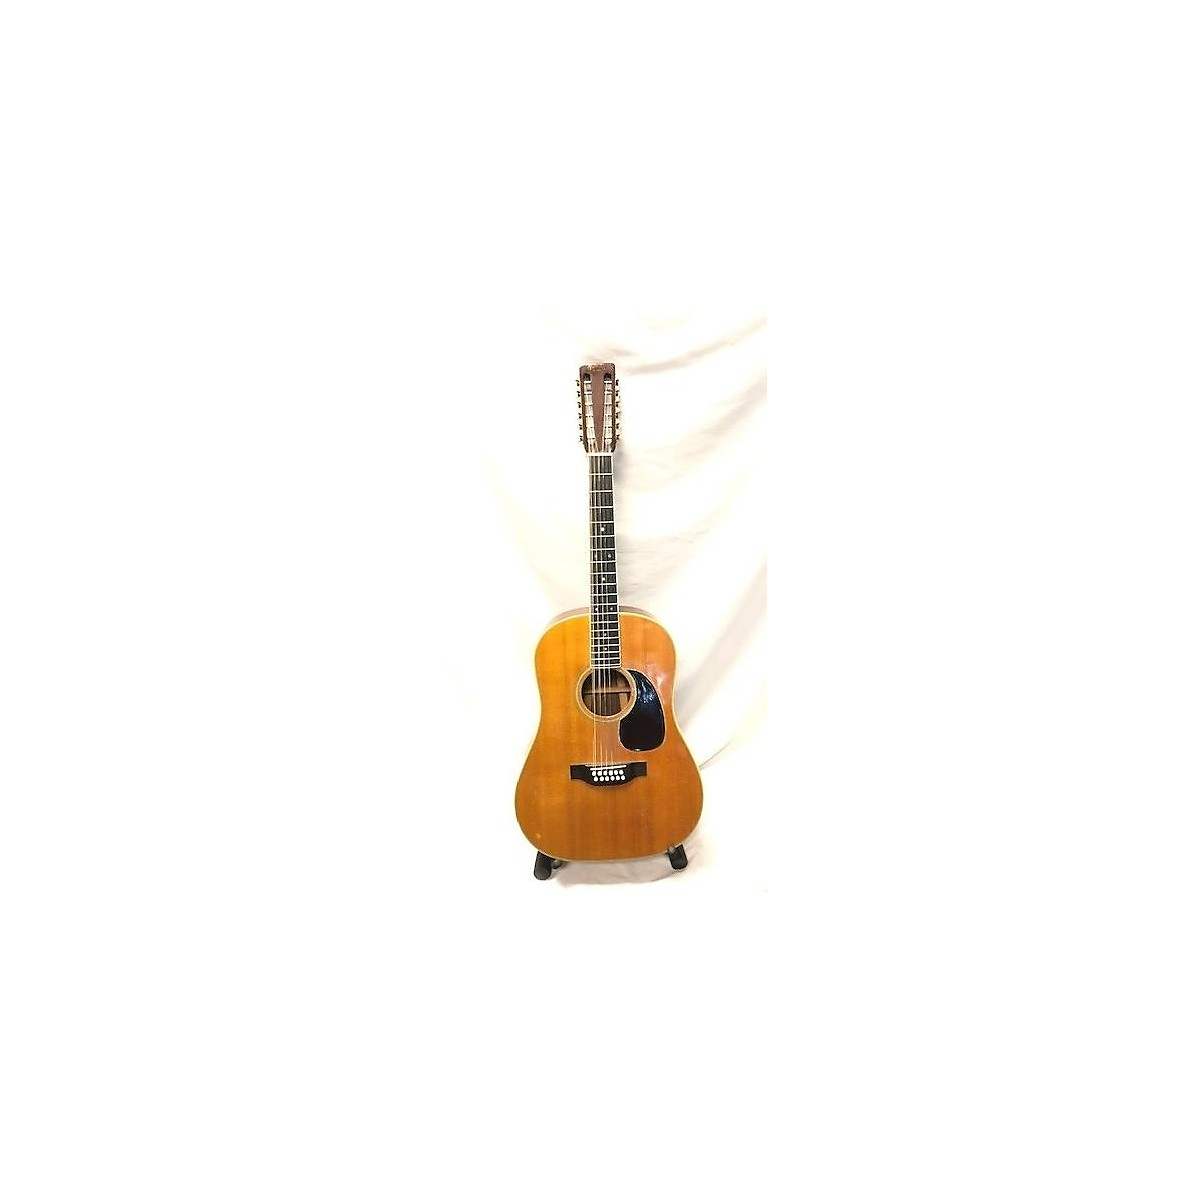 Martin 1968 D12-35 12 String Acoustic Guitar